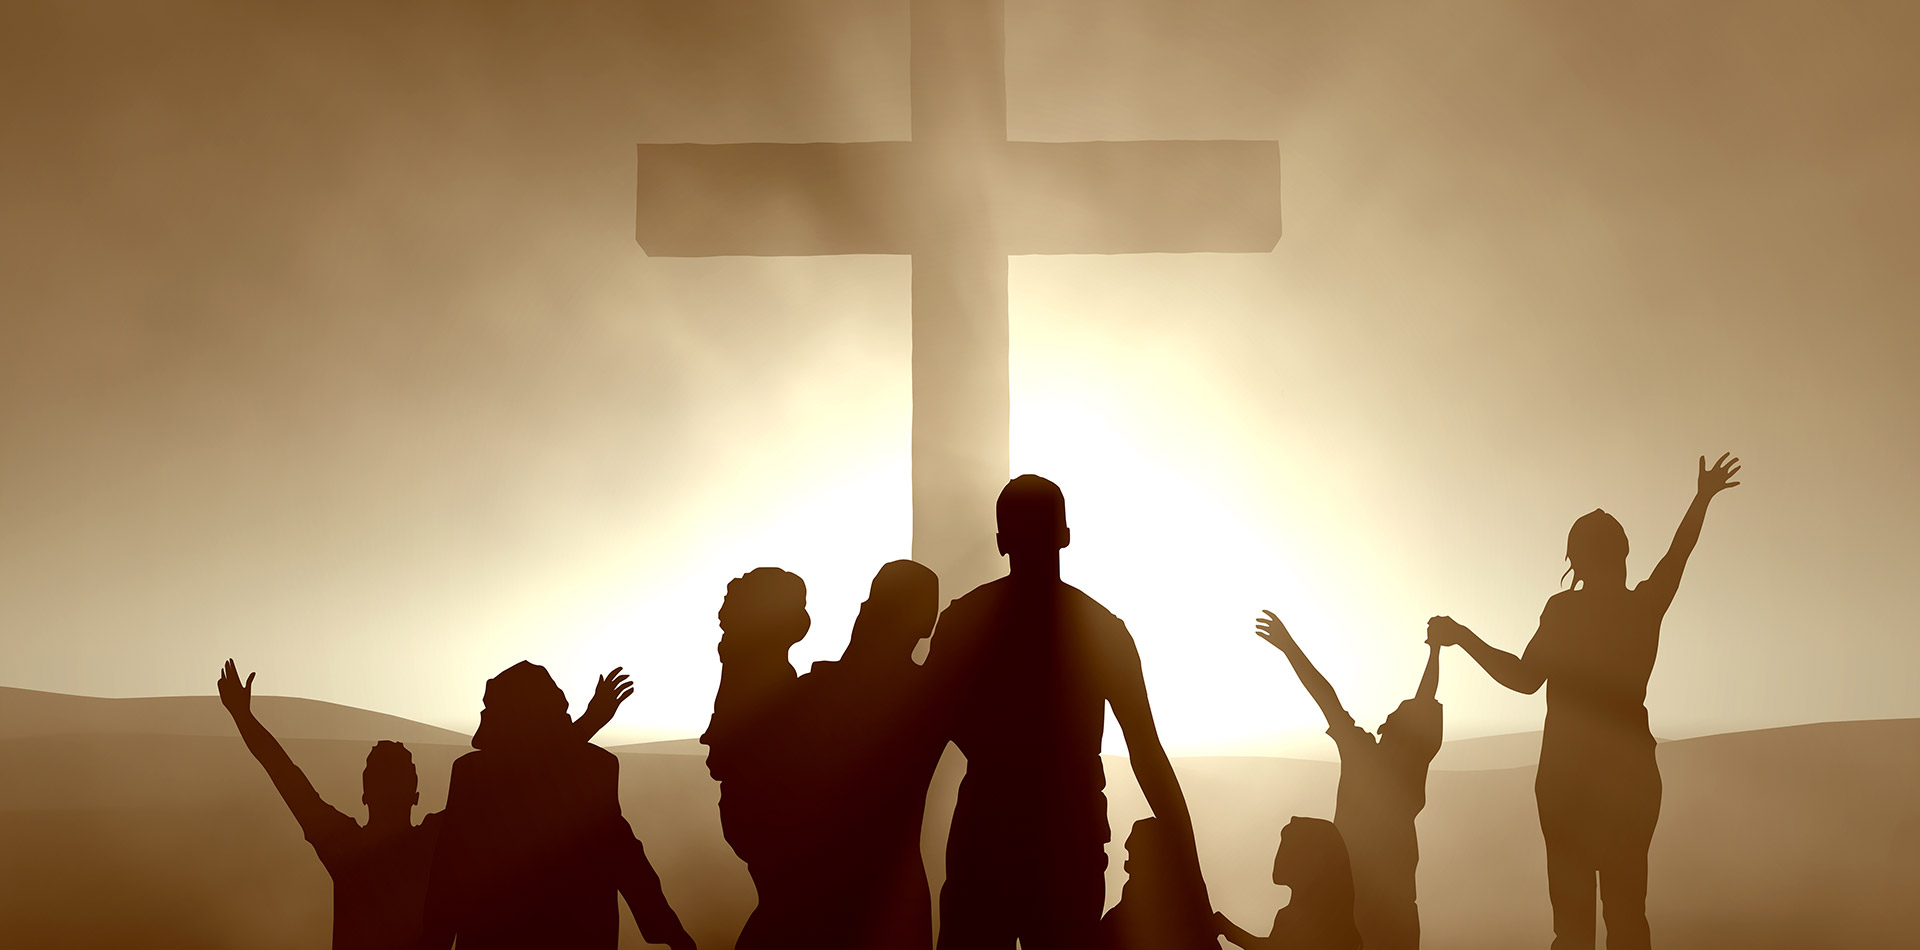 pray at the time jesus died on the cross 3pm passion of christ